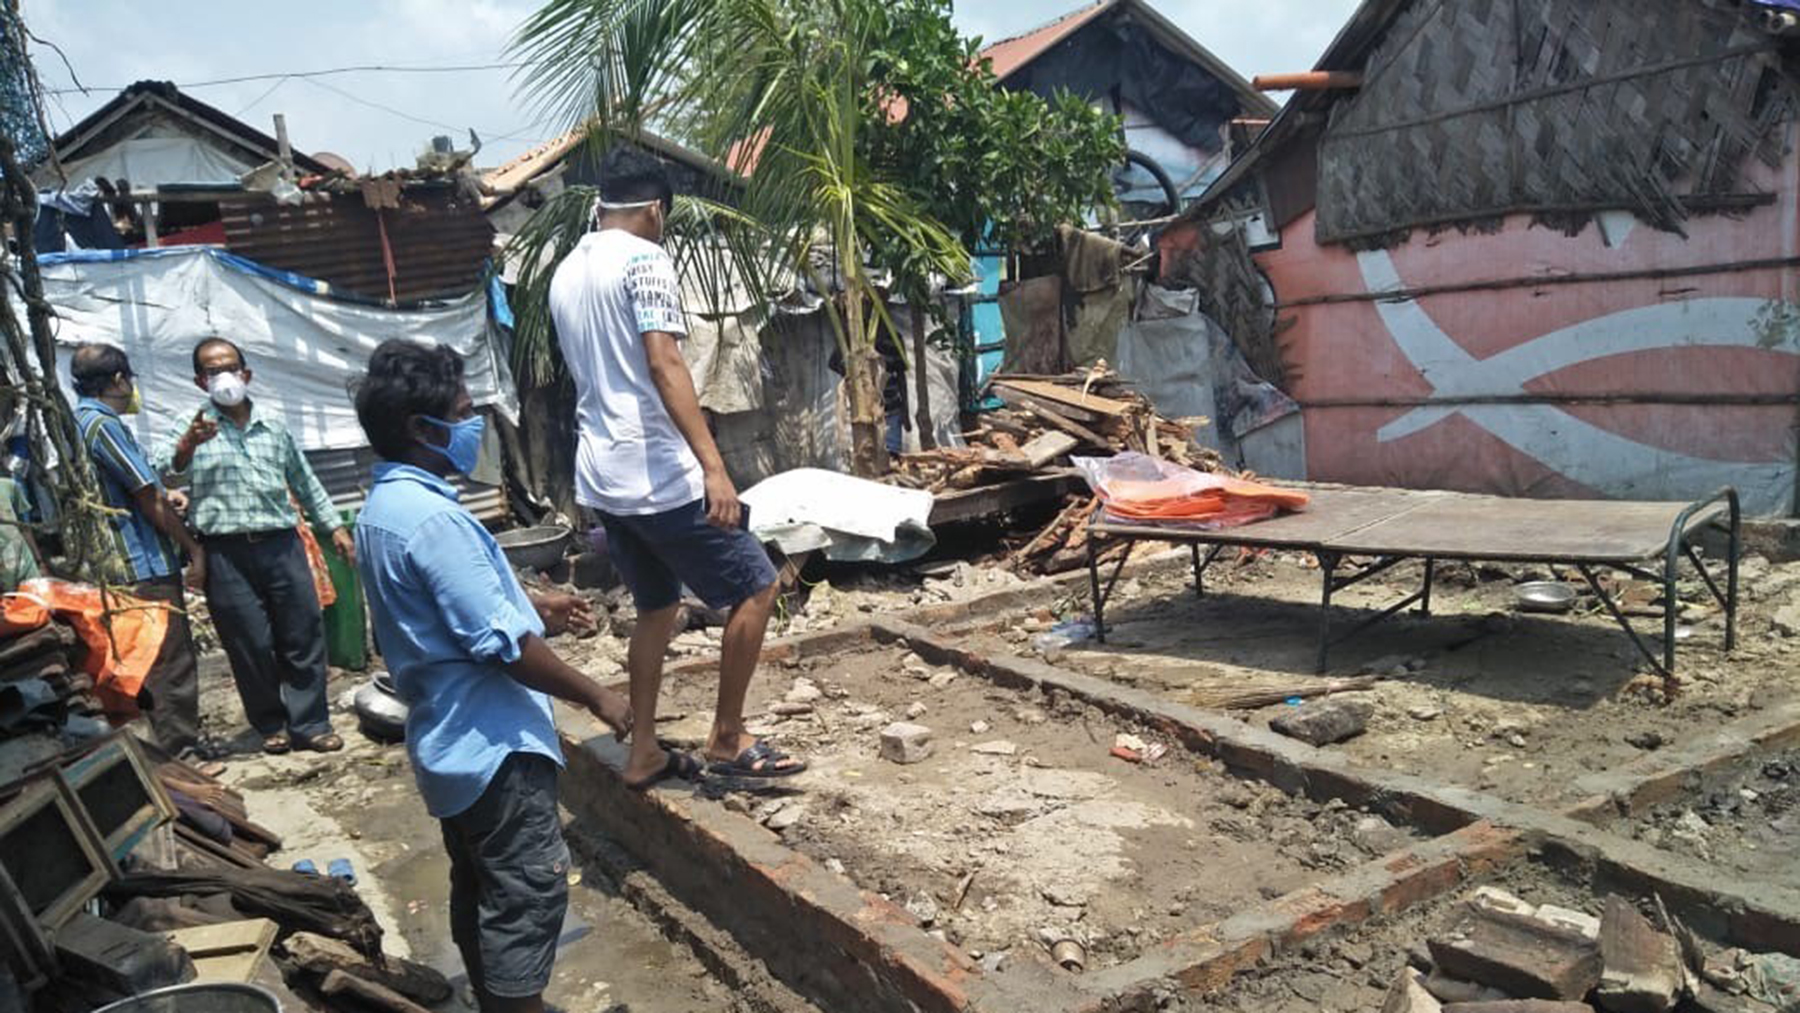 Calcutta Rescue workers examine a damaged structure. (Photo courtesy of Dr. Alakananda Ghosh)